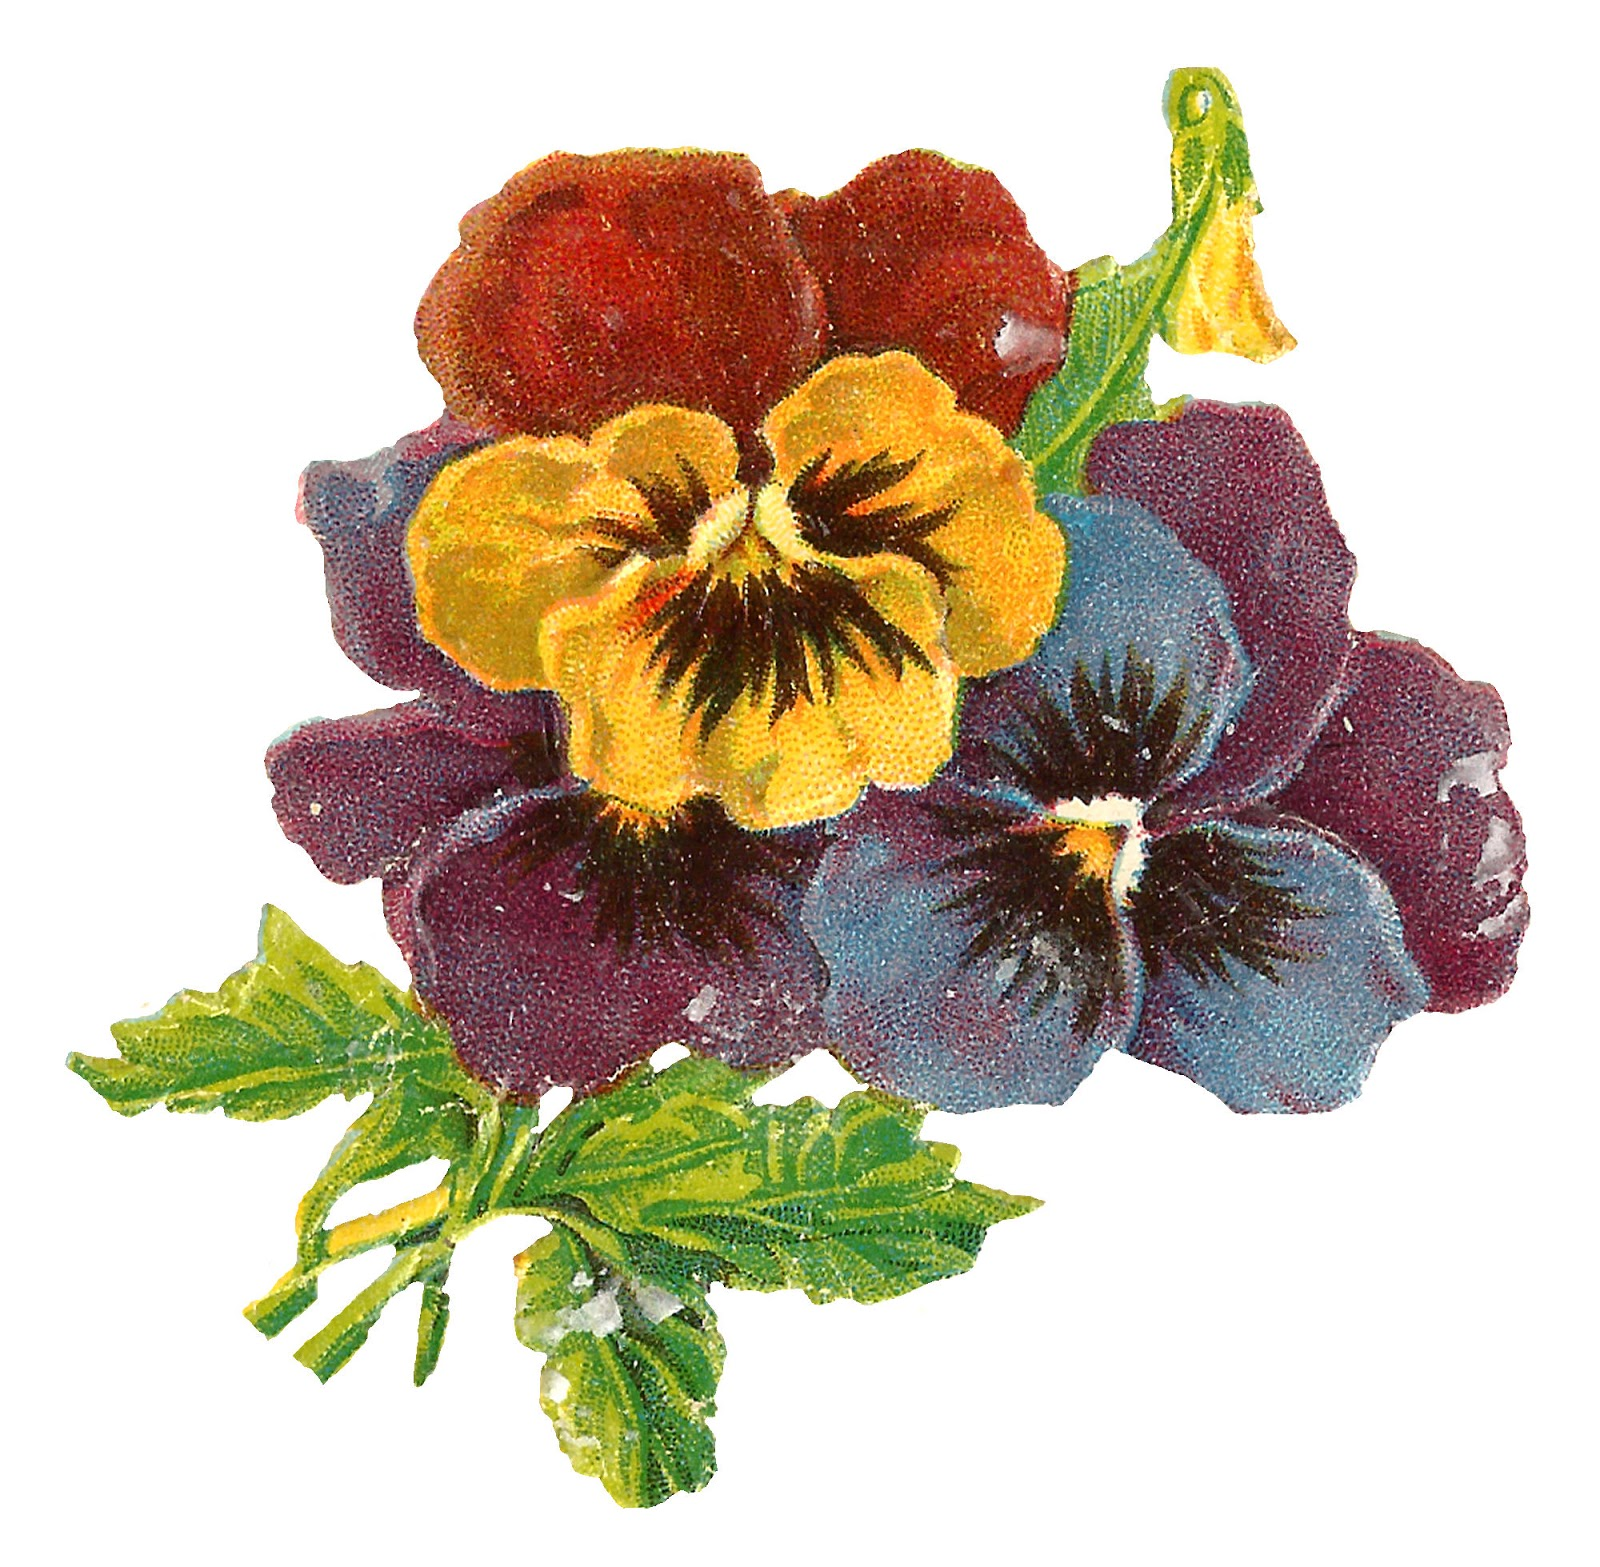 Antique Images: Antique Wildflower Art Illustration Pansy.